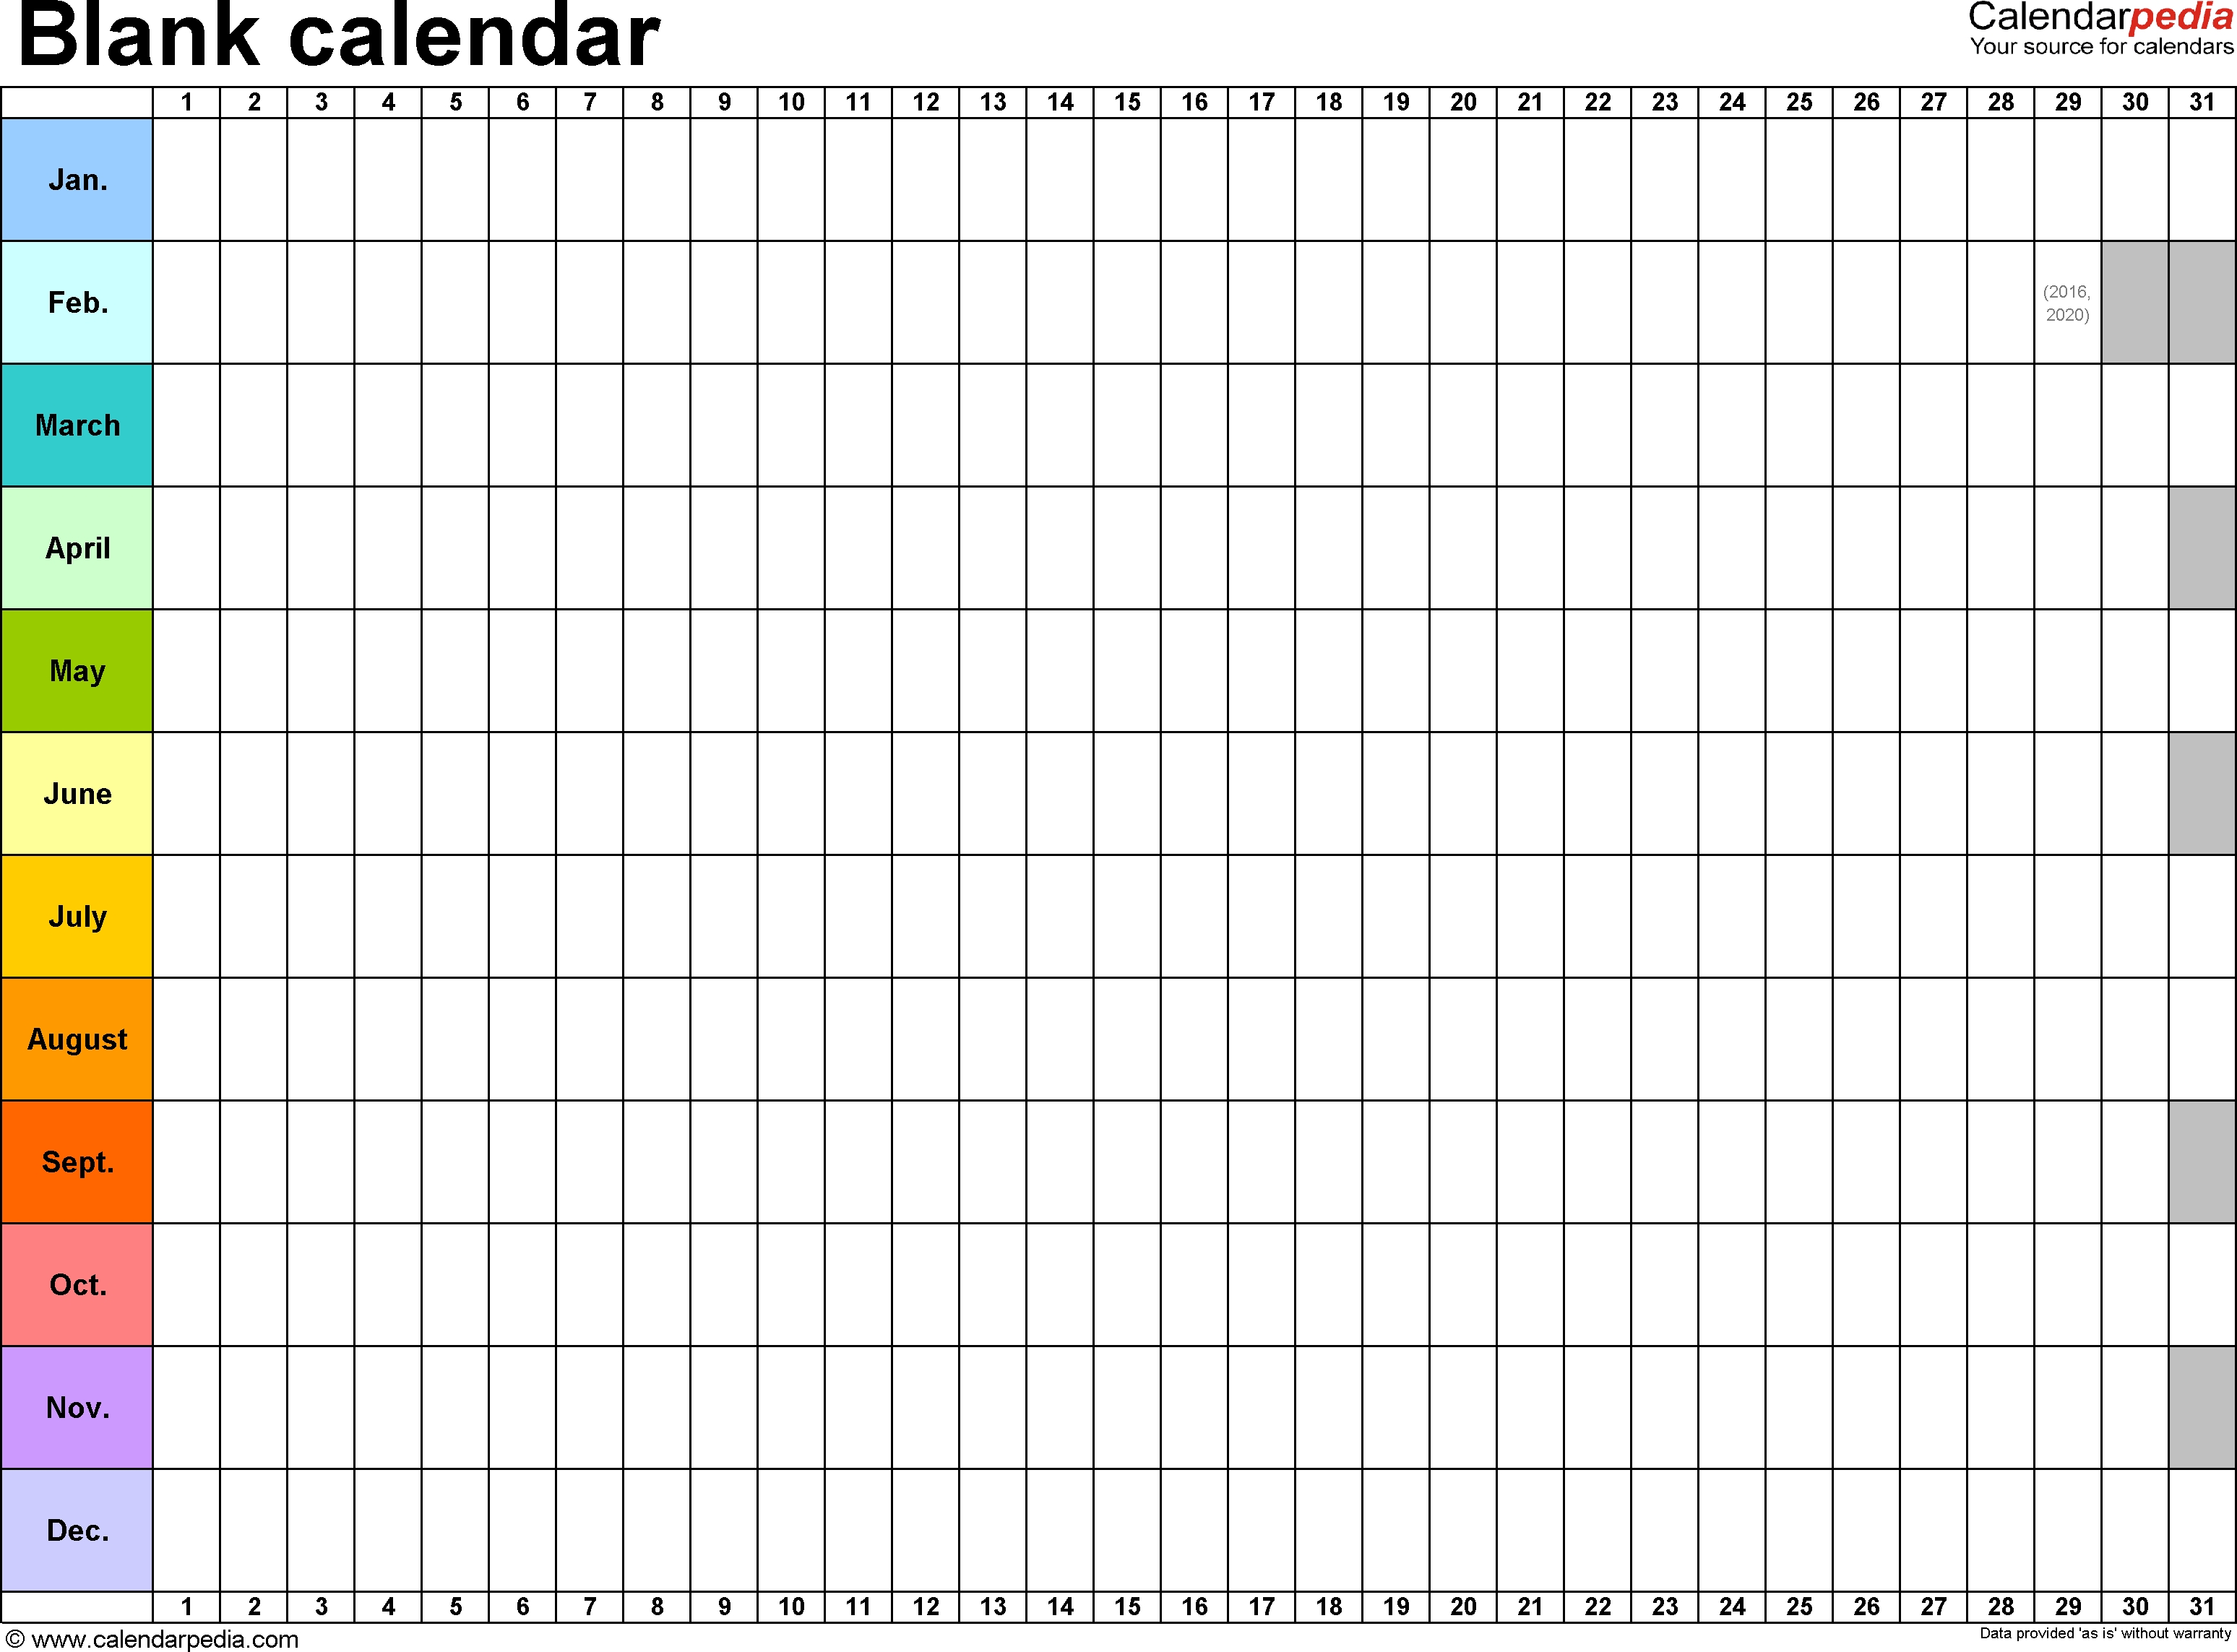 Blank Calendar - 9 Free Printable Microsoft Word Templates intended for Template Of A Blank Calendar Of A Month